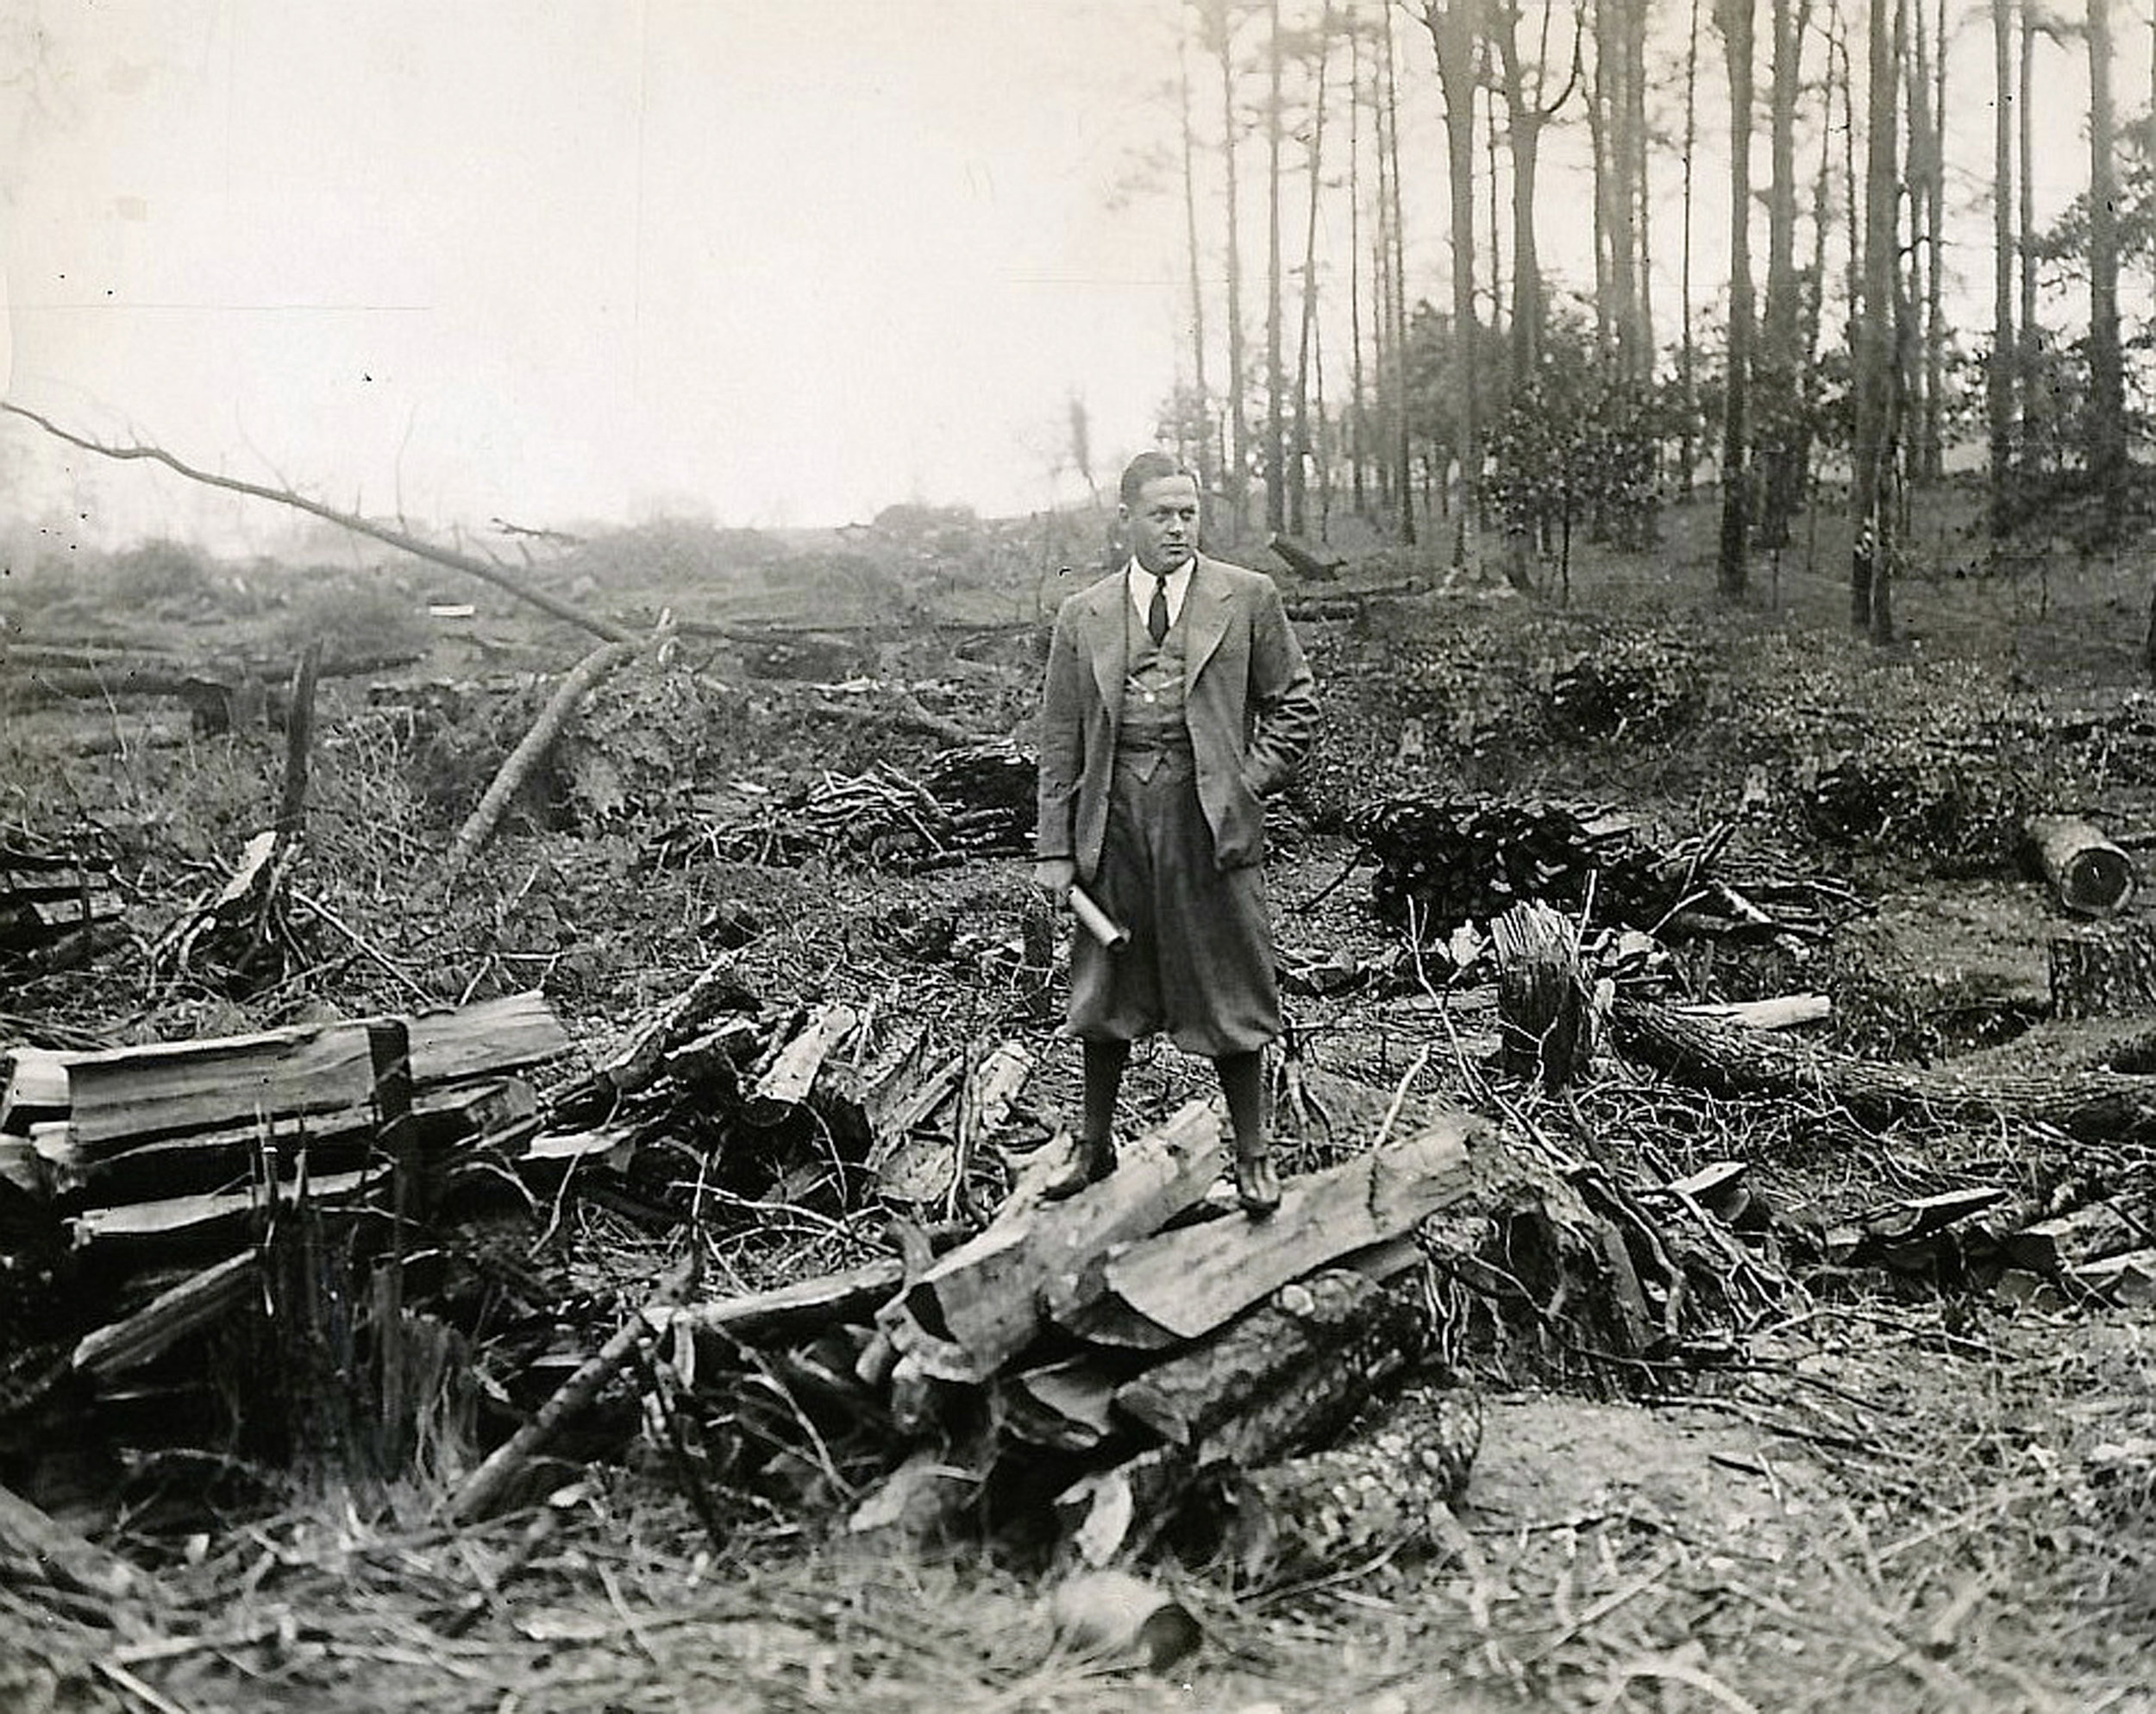 Bobby Jones surveys the Georgie fruit plantation that one day would become Augusta National Golf Club.